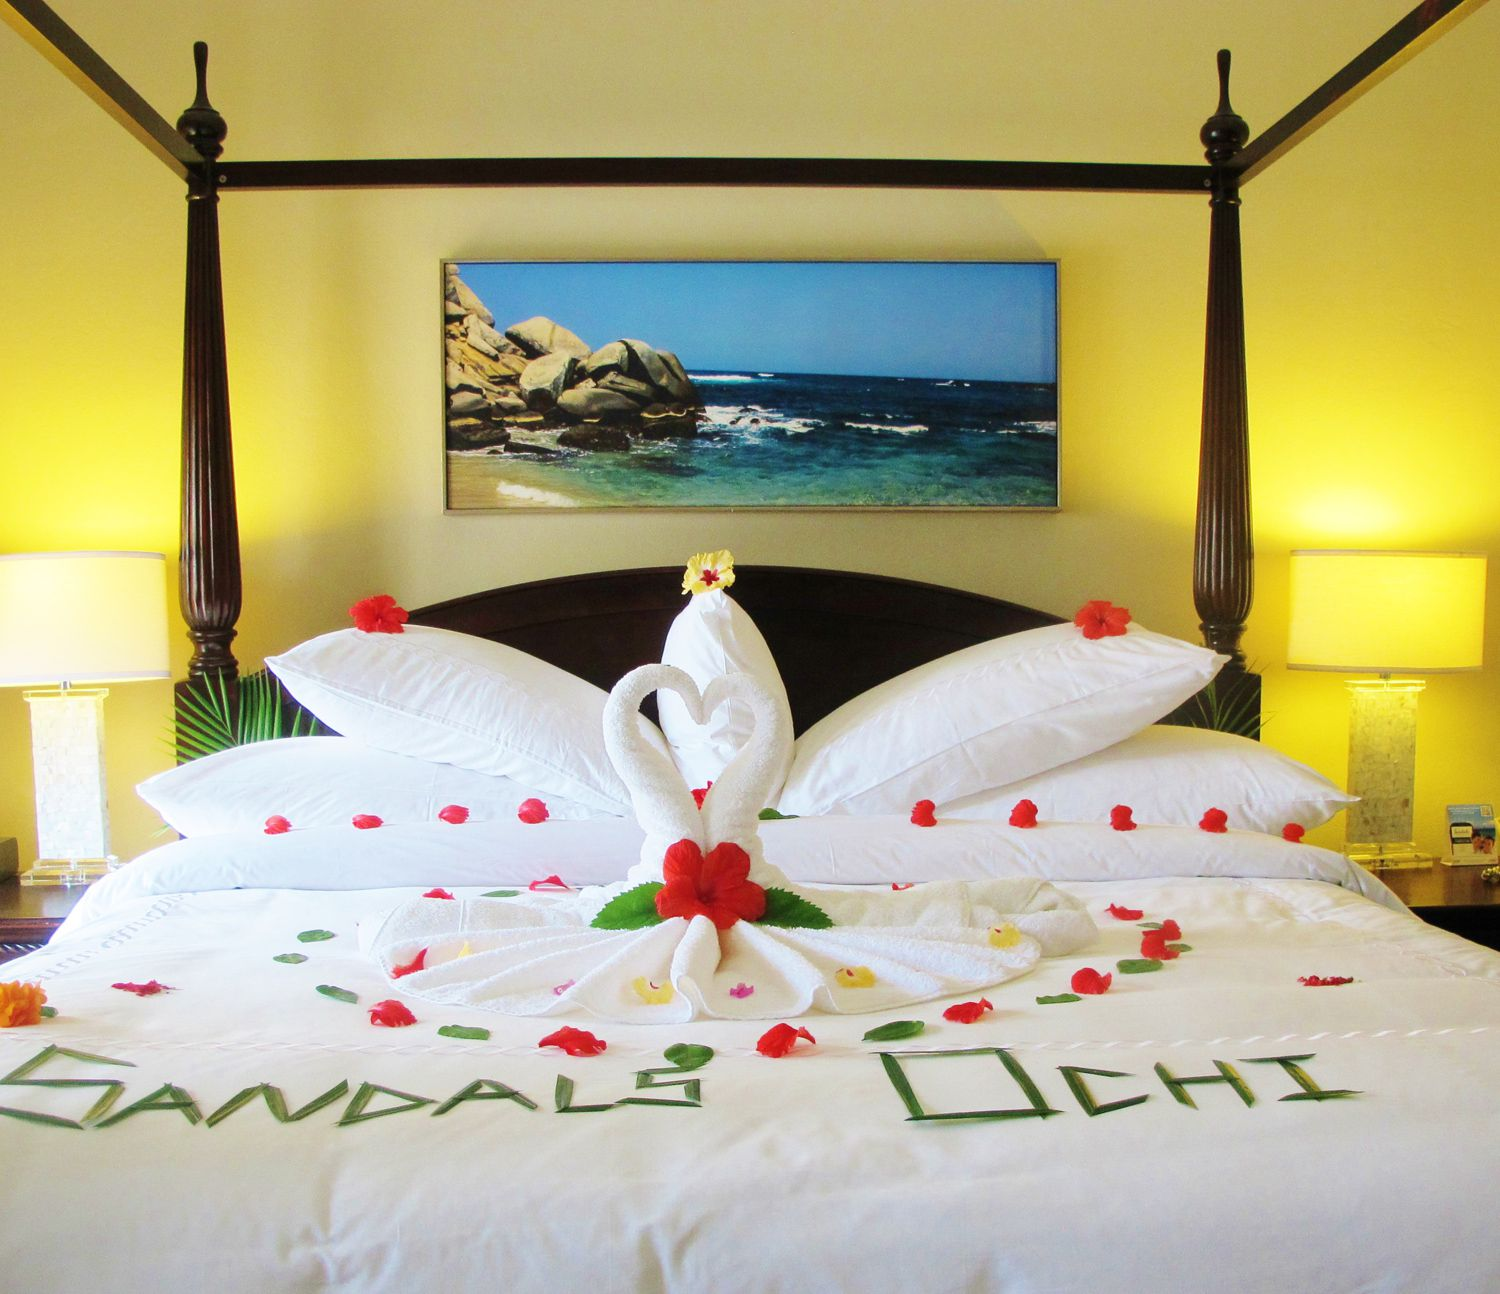 All Inclusive Pros And Cons At Honeymoon Resorts